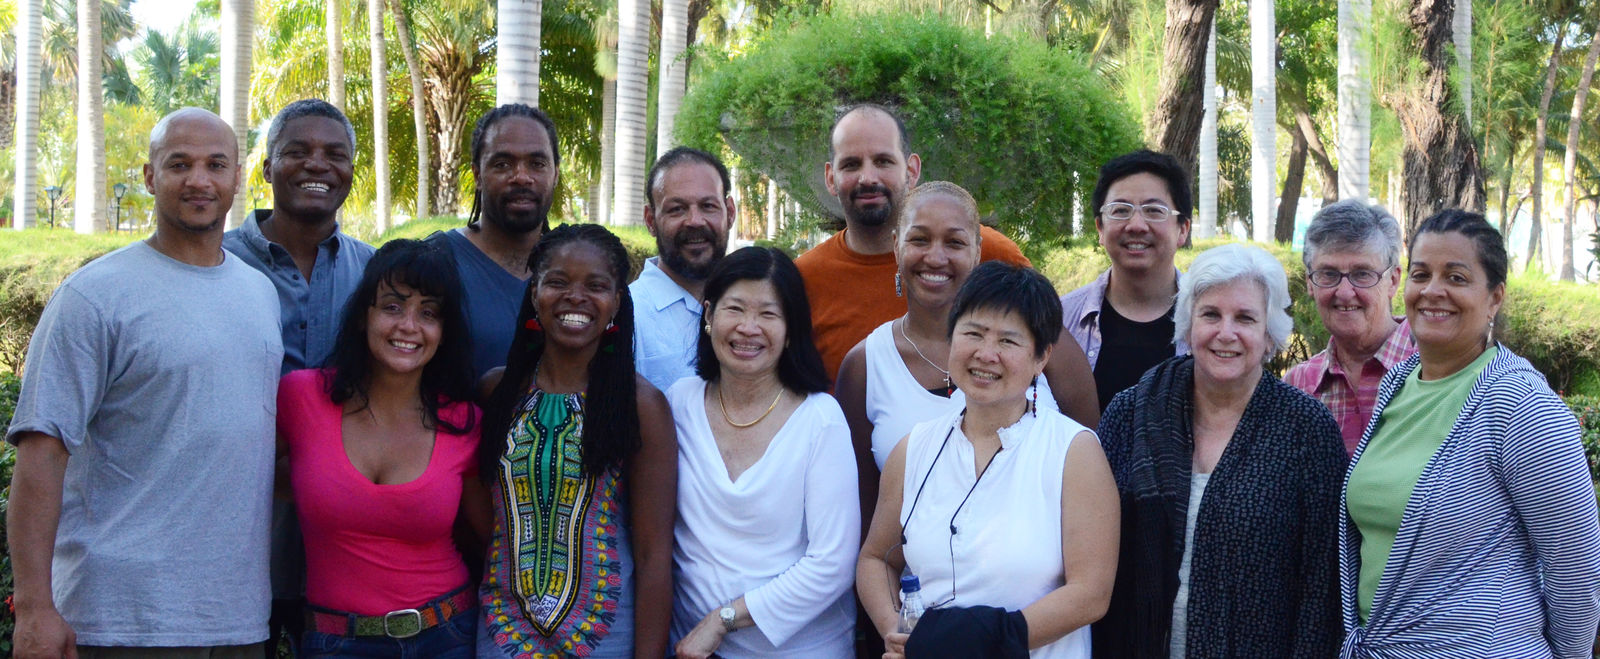 The 2007 Barr Fellows class smiles for a group photo.